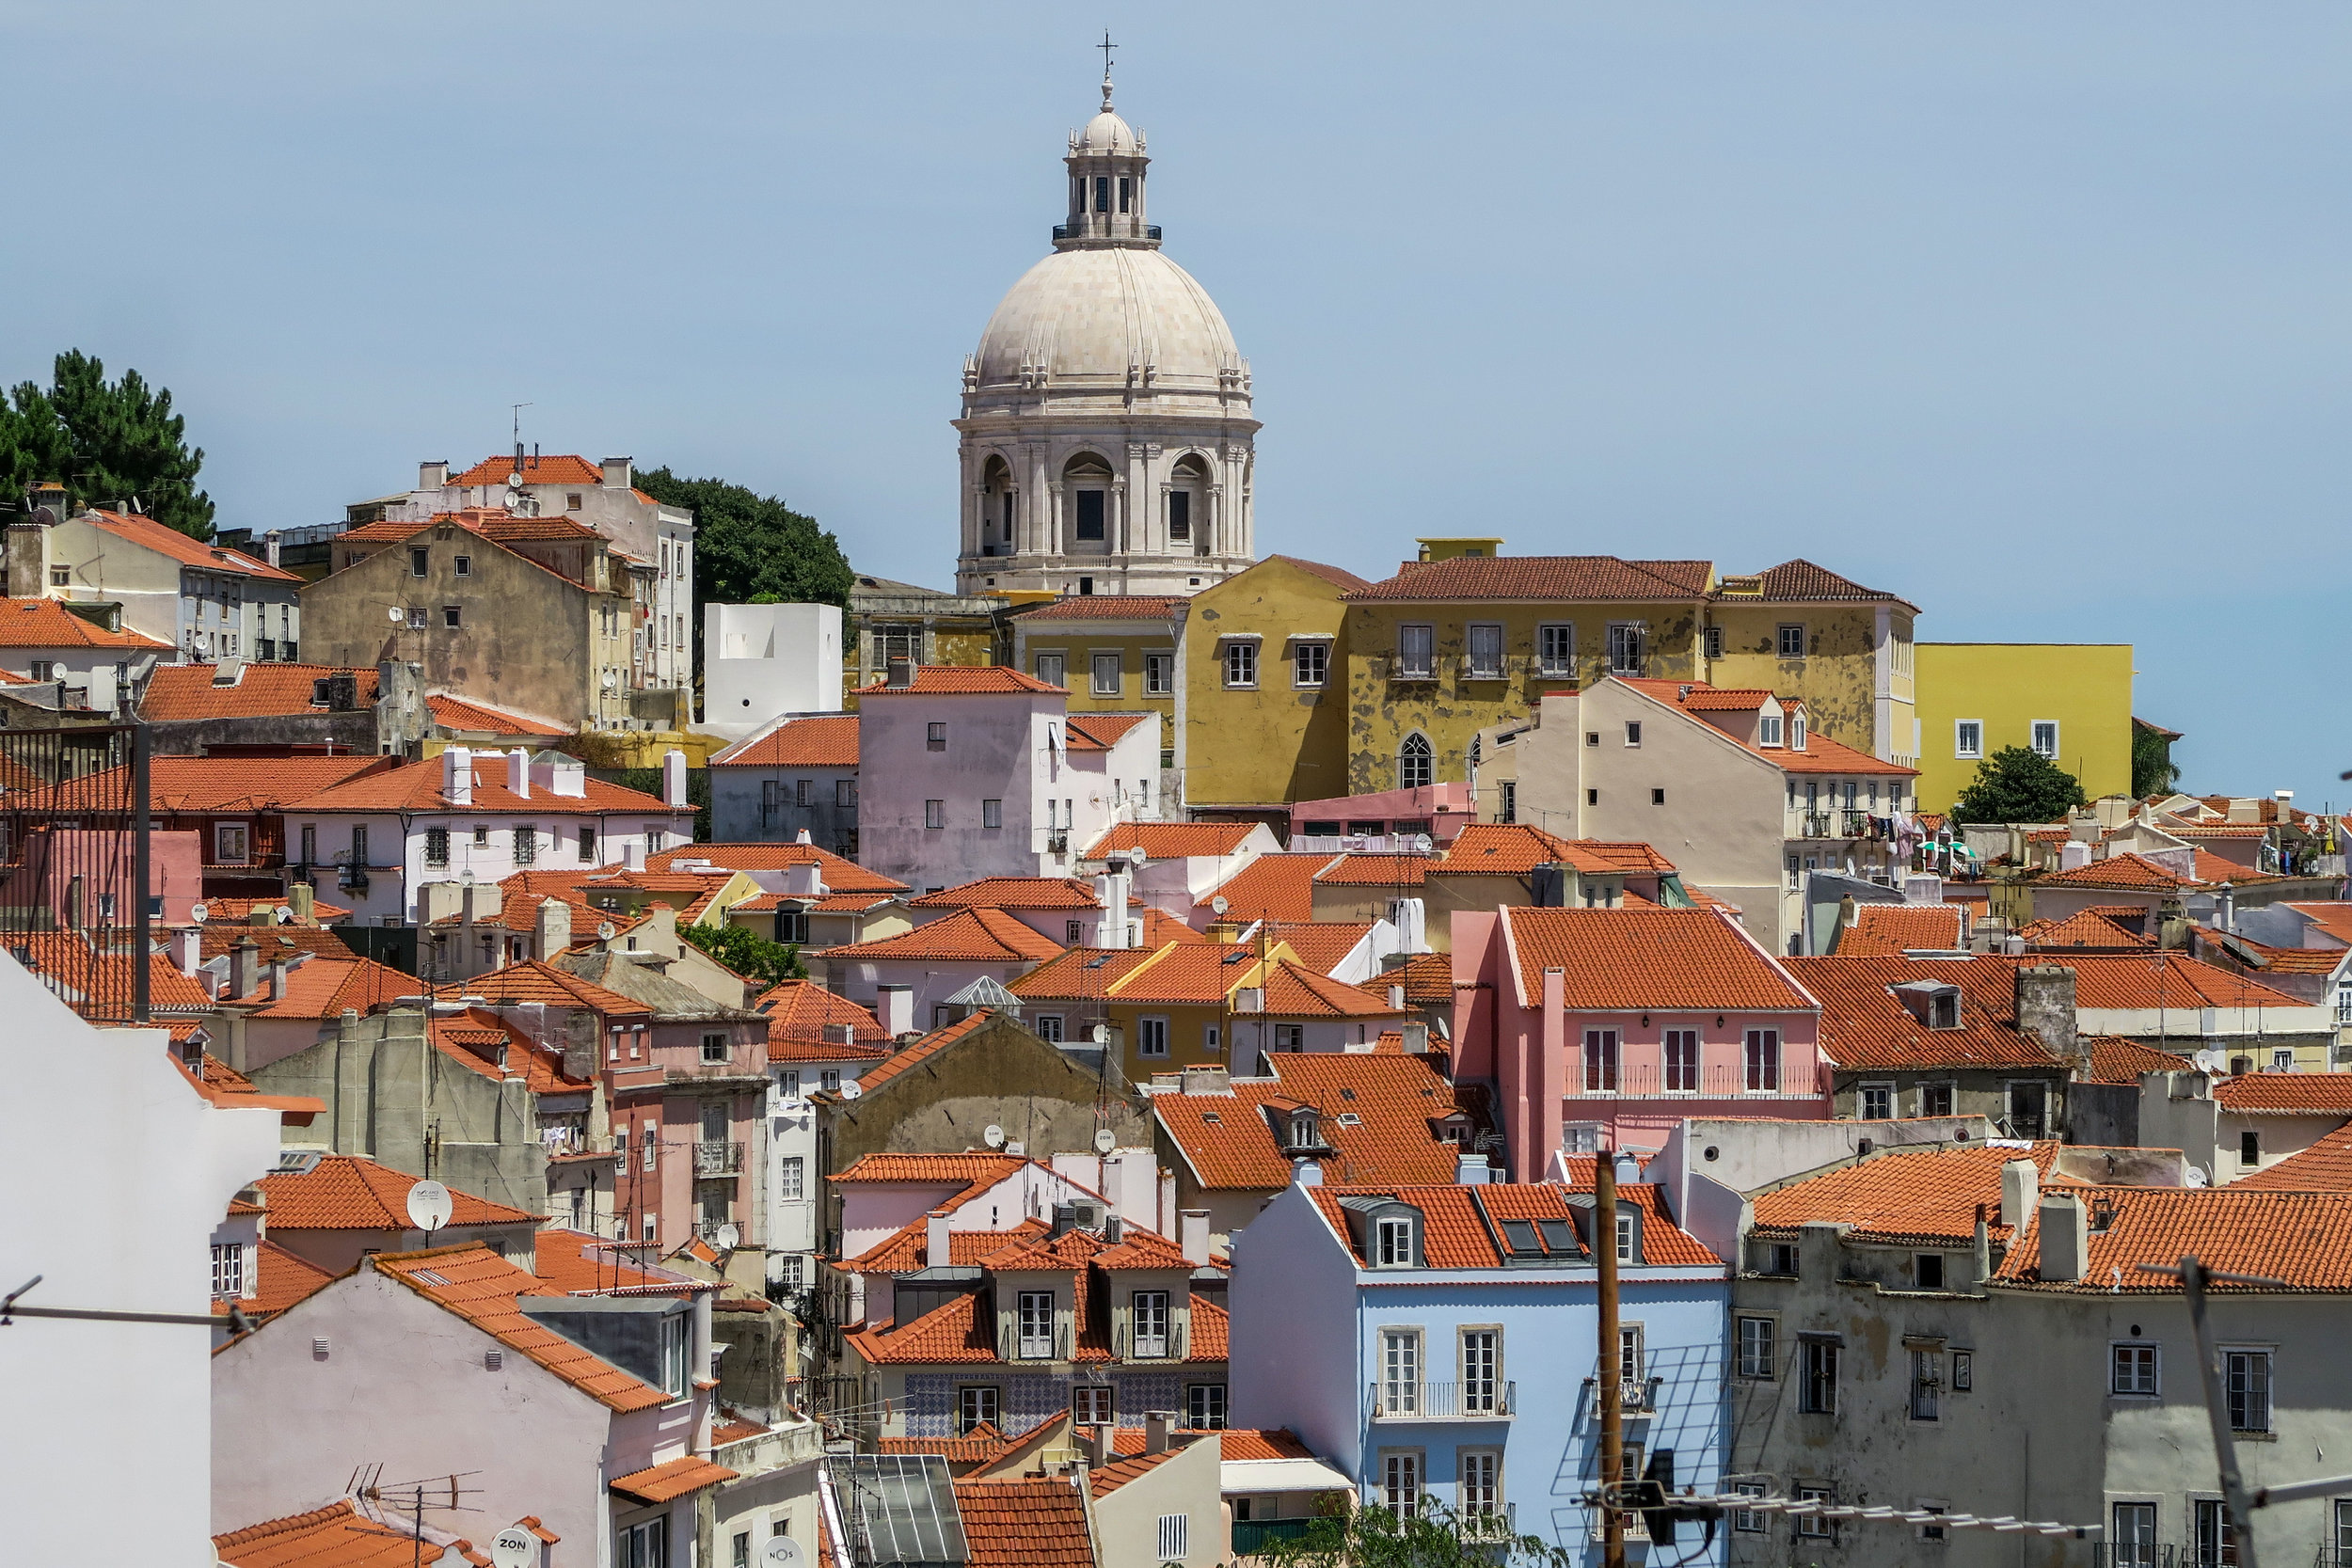 Portugal - Things to See and DoSuggest BudgetTypical CostMoney Saving TipsWhere To StayHow to Get AroundWhen To GoHow to Stay SafeWhere to Book Your TripSuggested BooksMy Must Have GuidesArticles About Southeast Asia